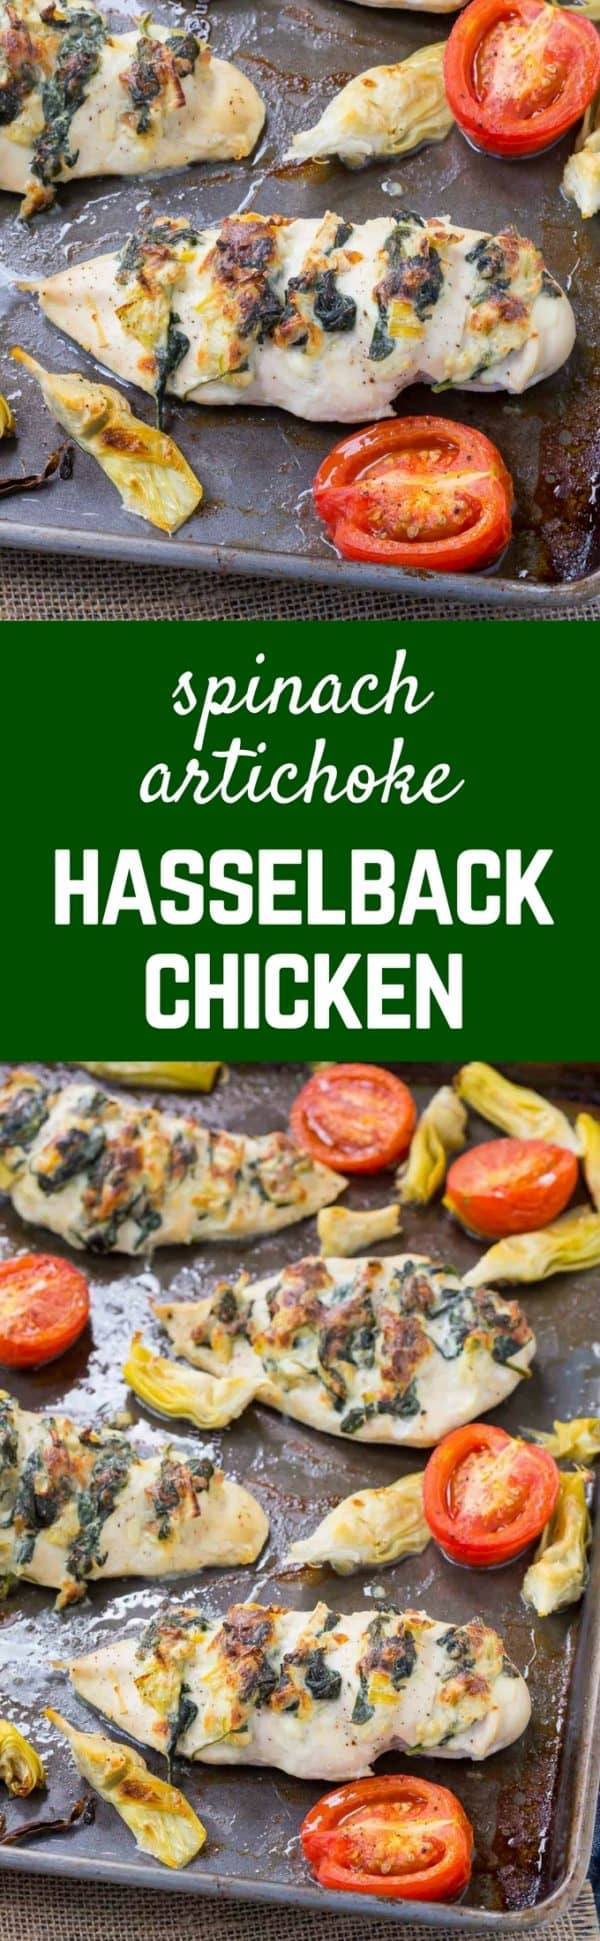 This Hasselback Chicken with Spinach and Artichoke might be your new favorite way to prepare chicken. Rounded out with a few vegetables, this is a perfect weeknight meal! Get the recipe on RachelCooks.com!